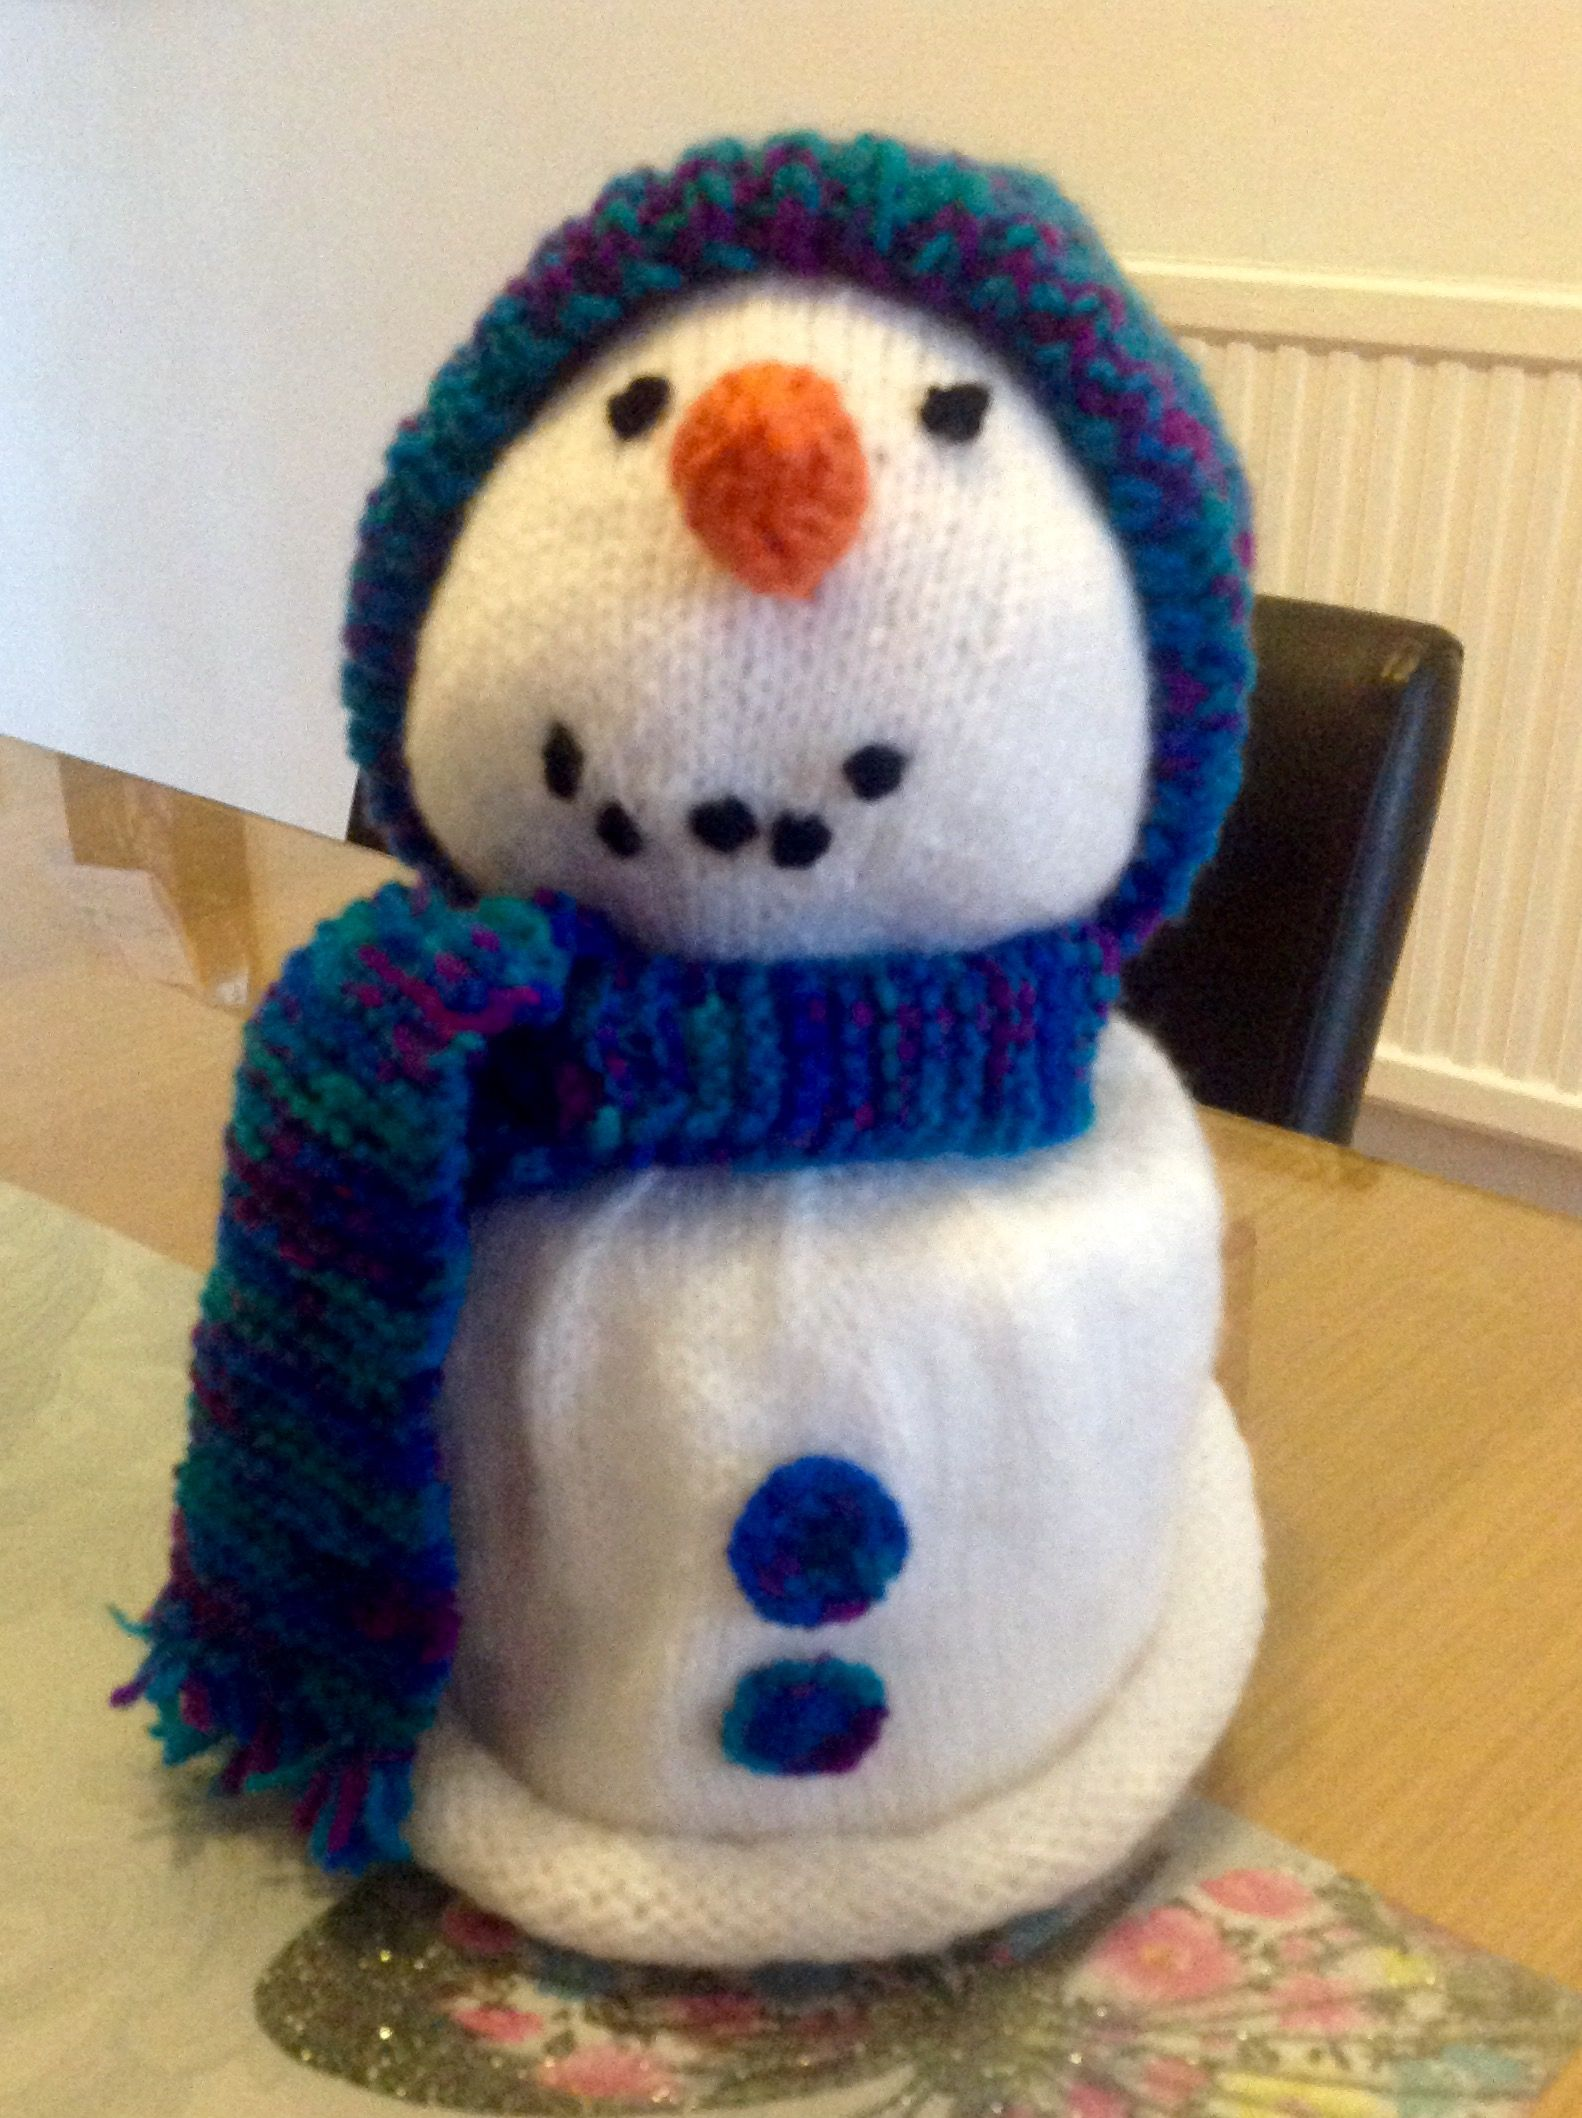 Snowman Toilet Roll Cover Knitting Pattern By Knitting By